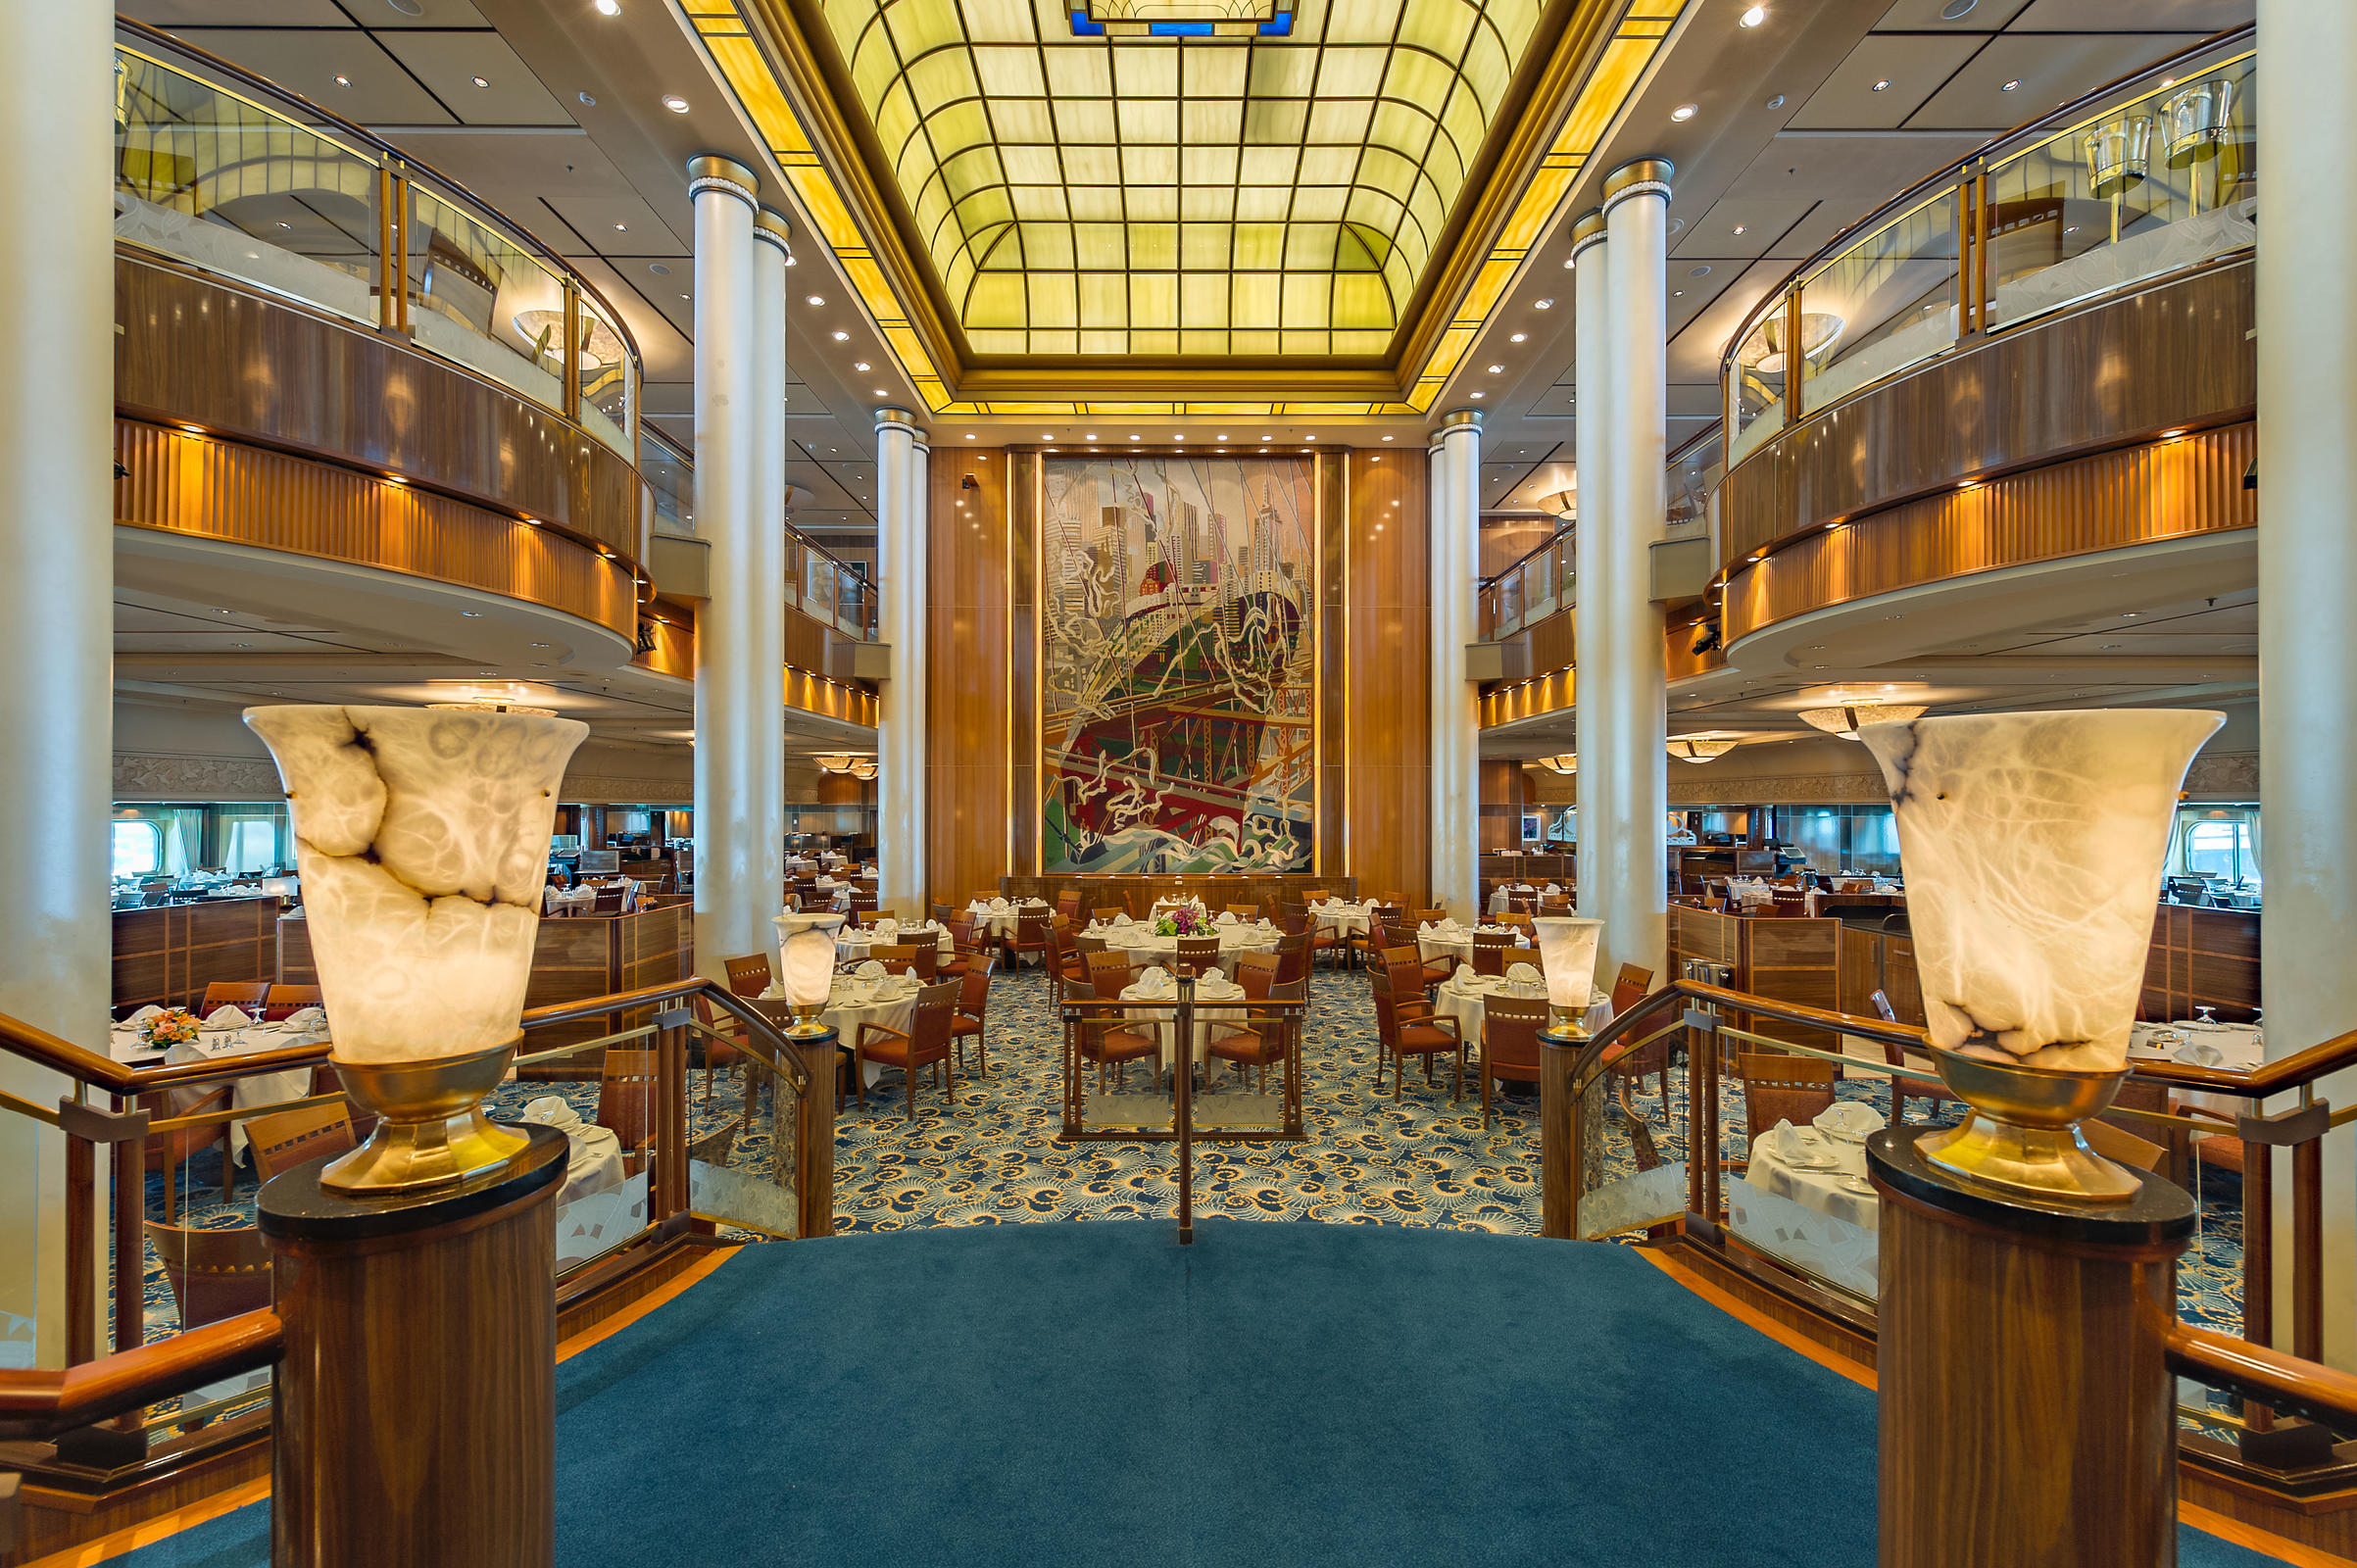 Queen Mary 2 Dining Room